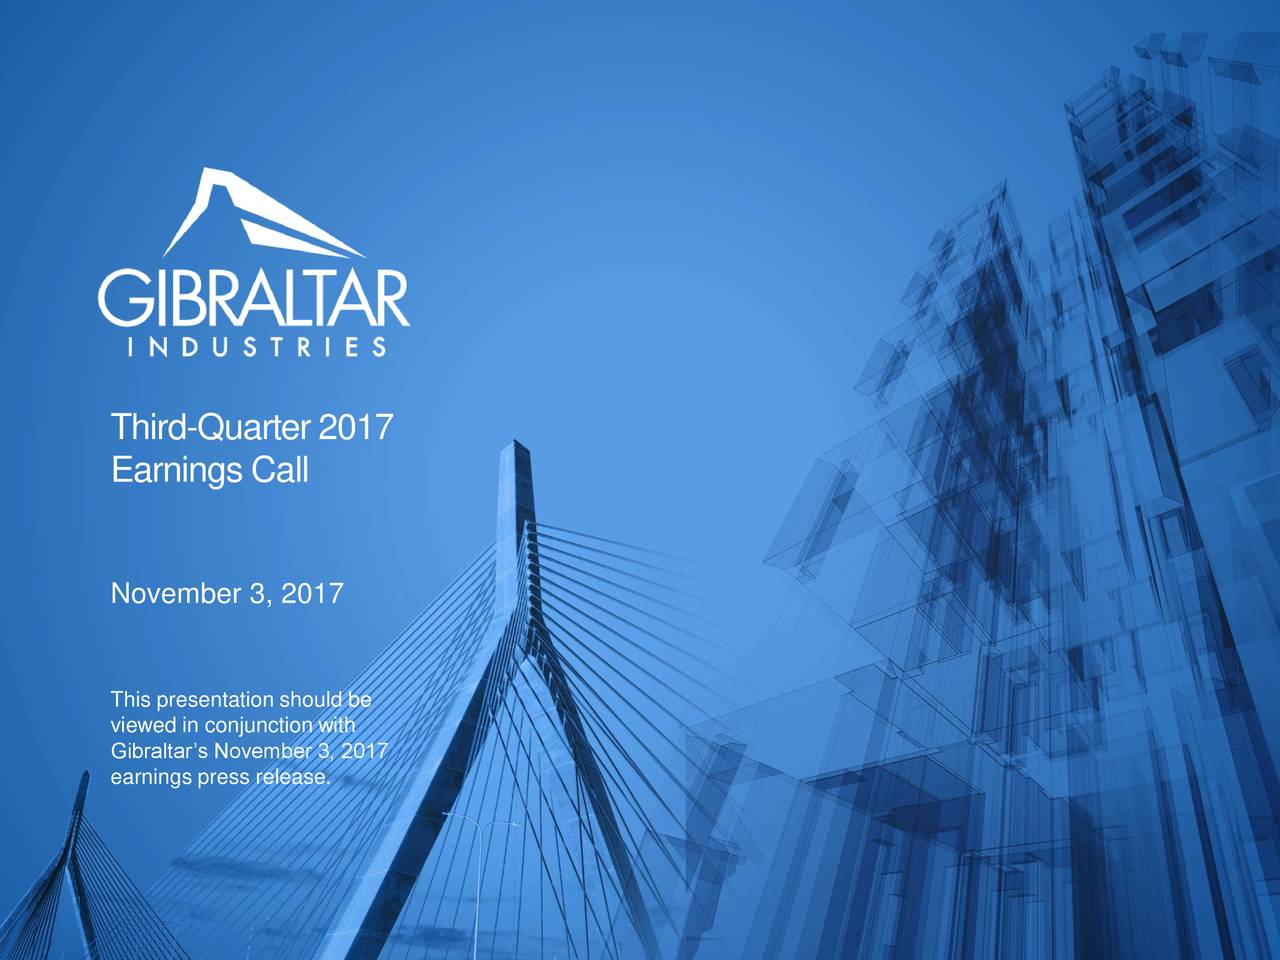 Earnings Call Slides: Gibraltar Industries, Inc. 2017 Q3